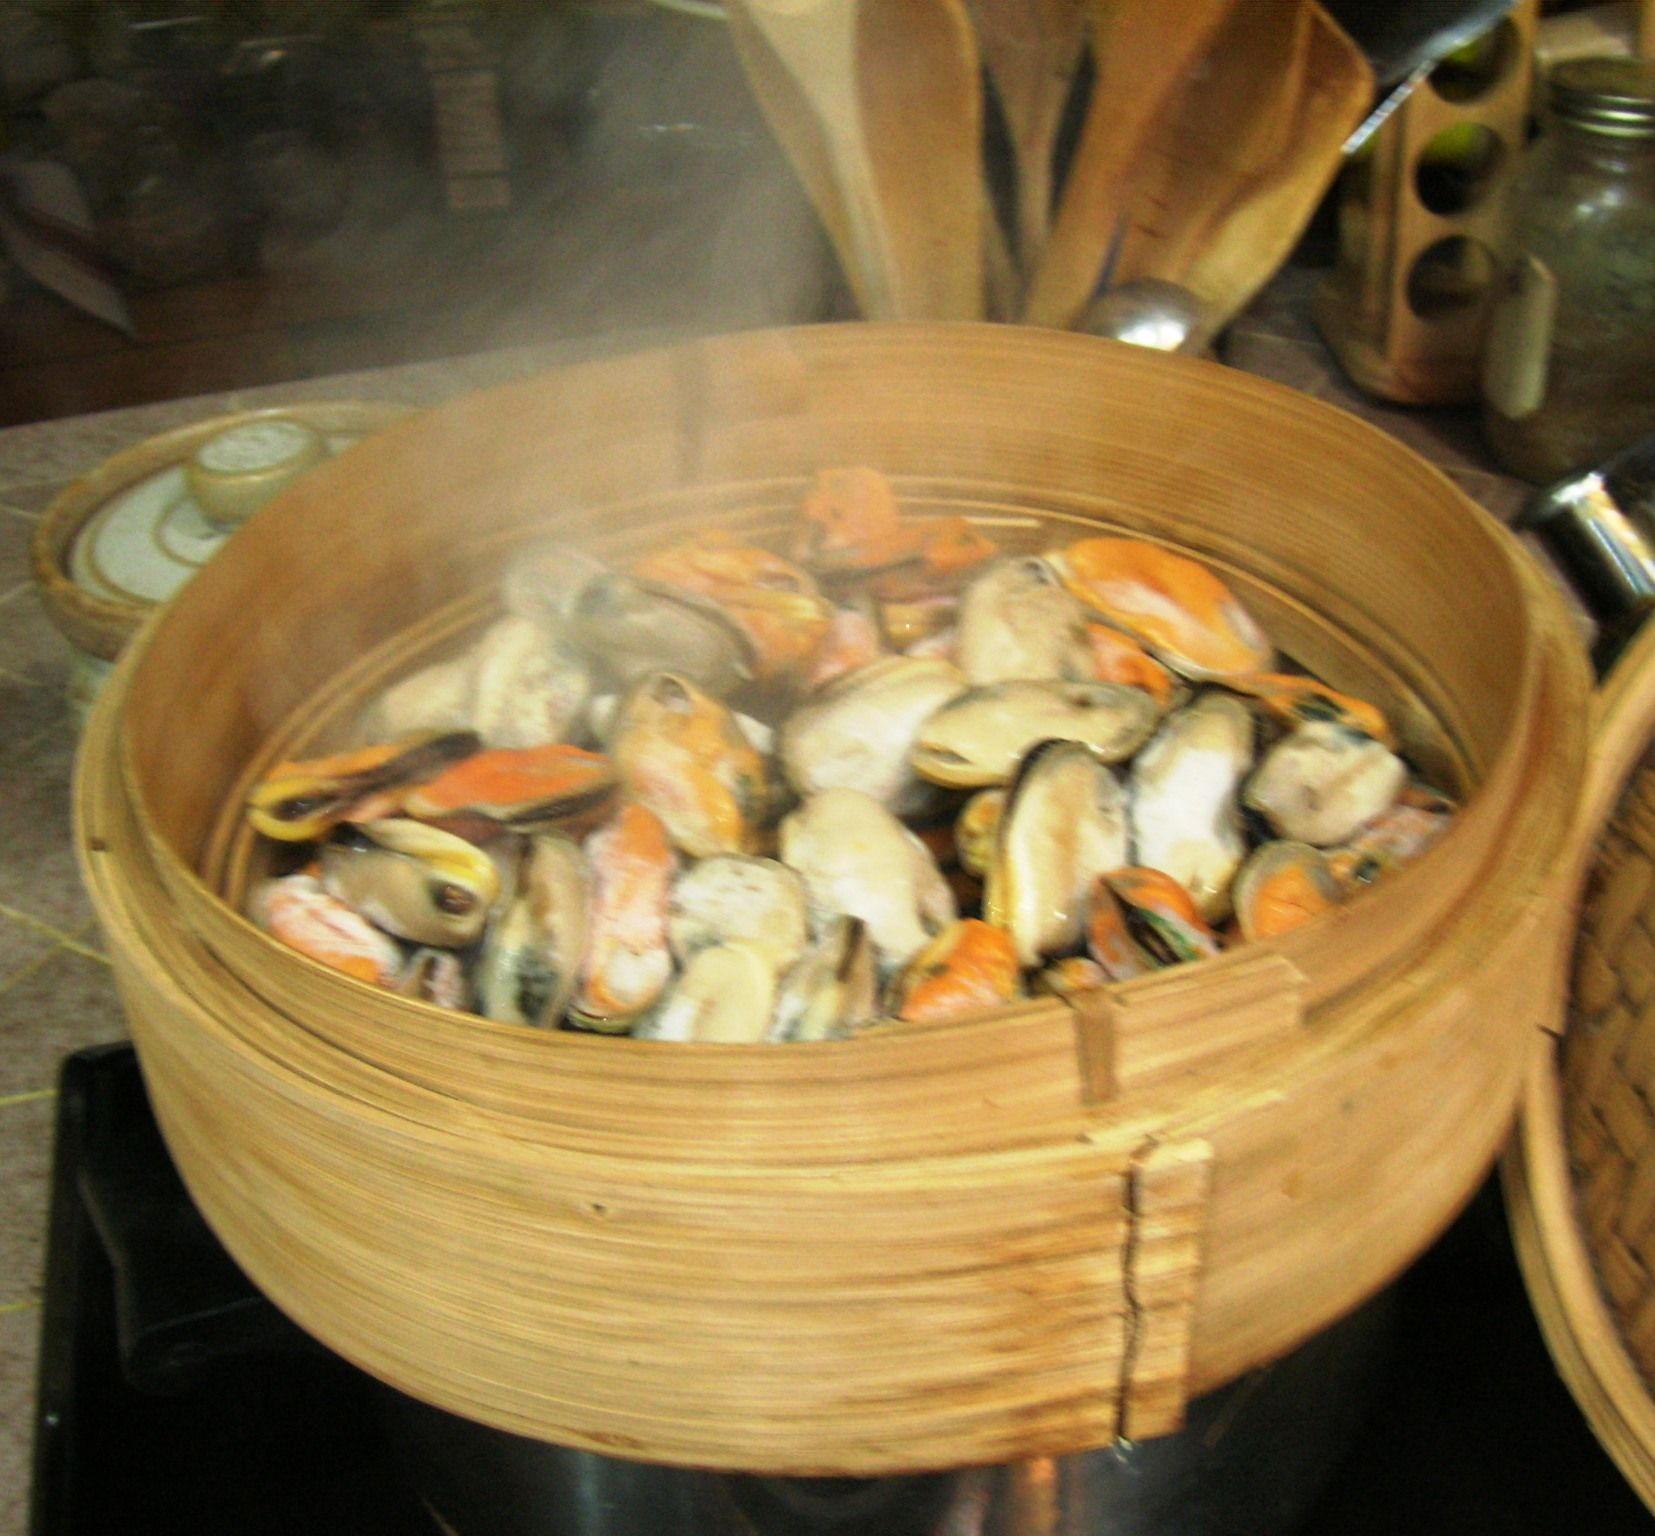 Dove Comprare Vaporiera Bamboo.Bamboo Steaming Mussels Steam Recipes Steamer Recipes Food